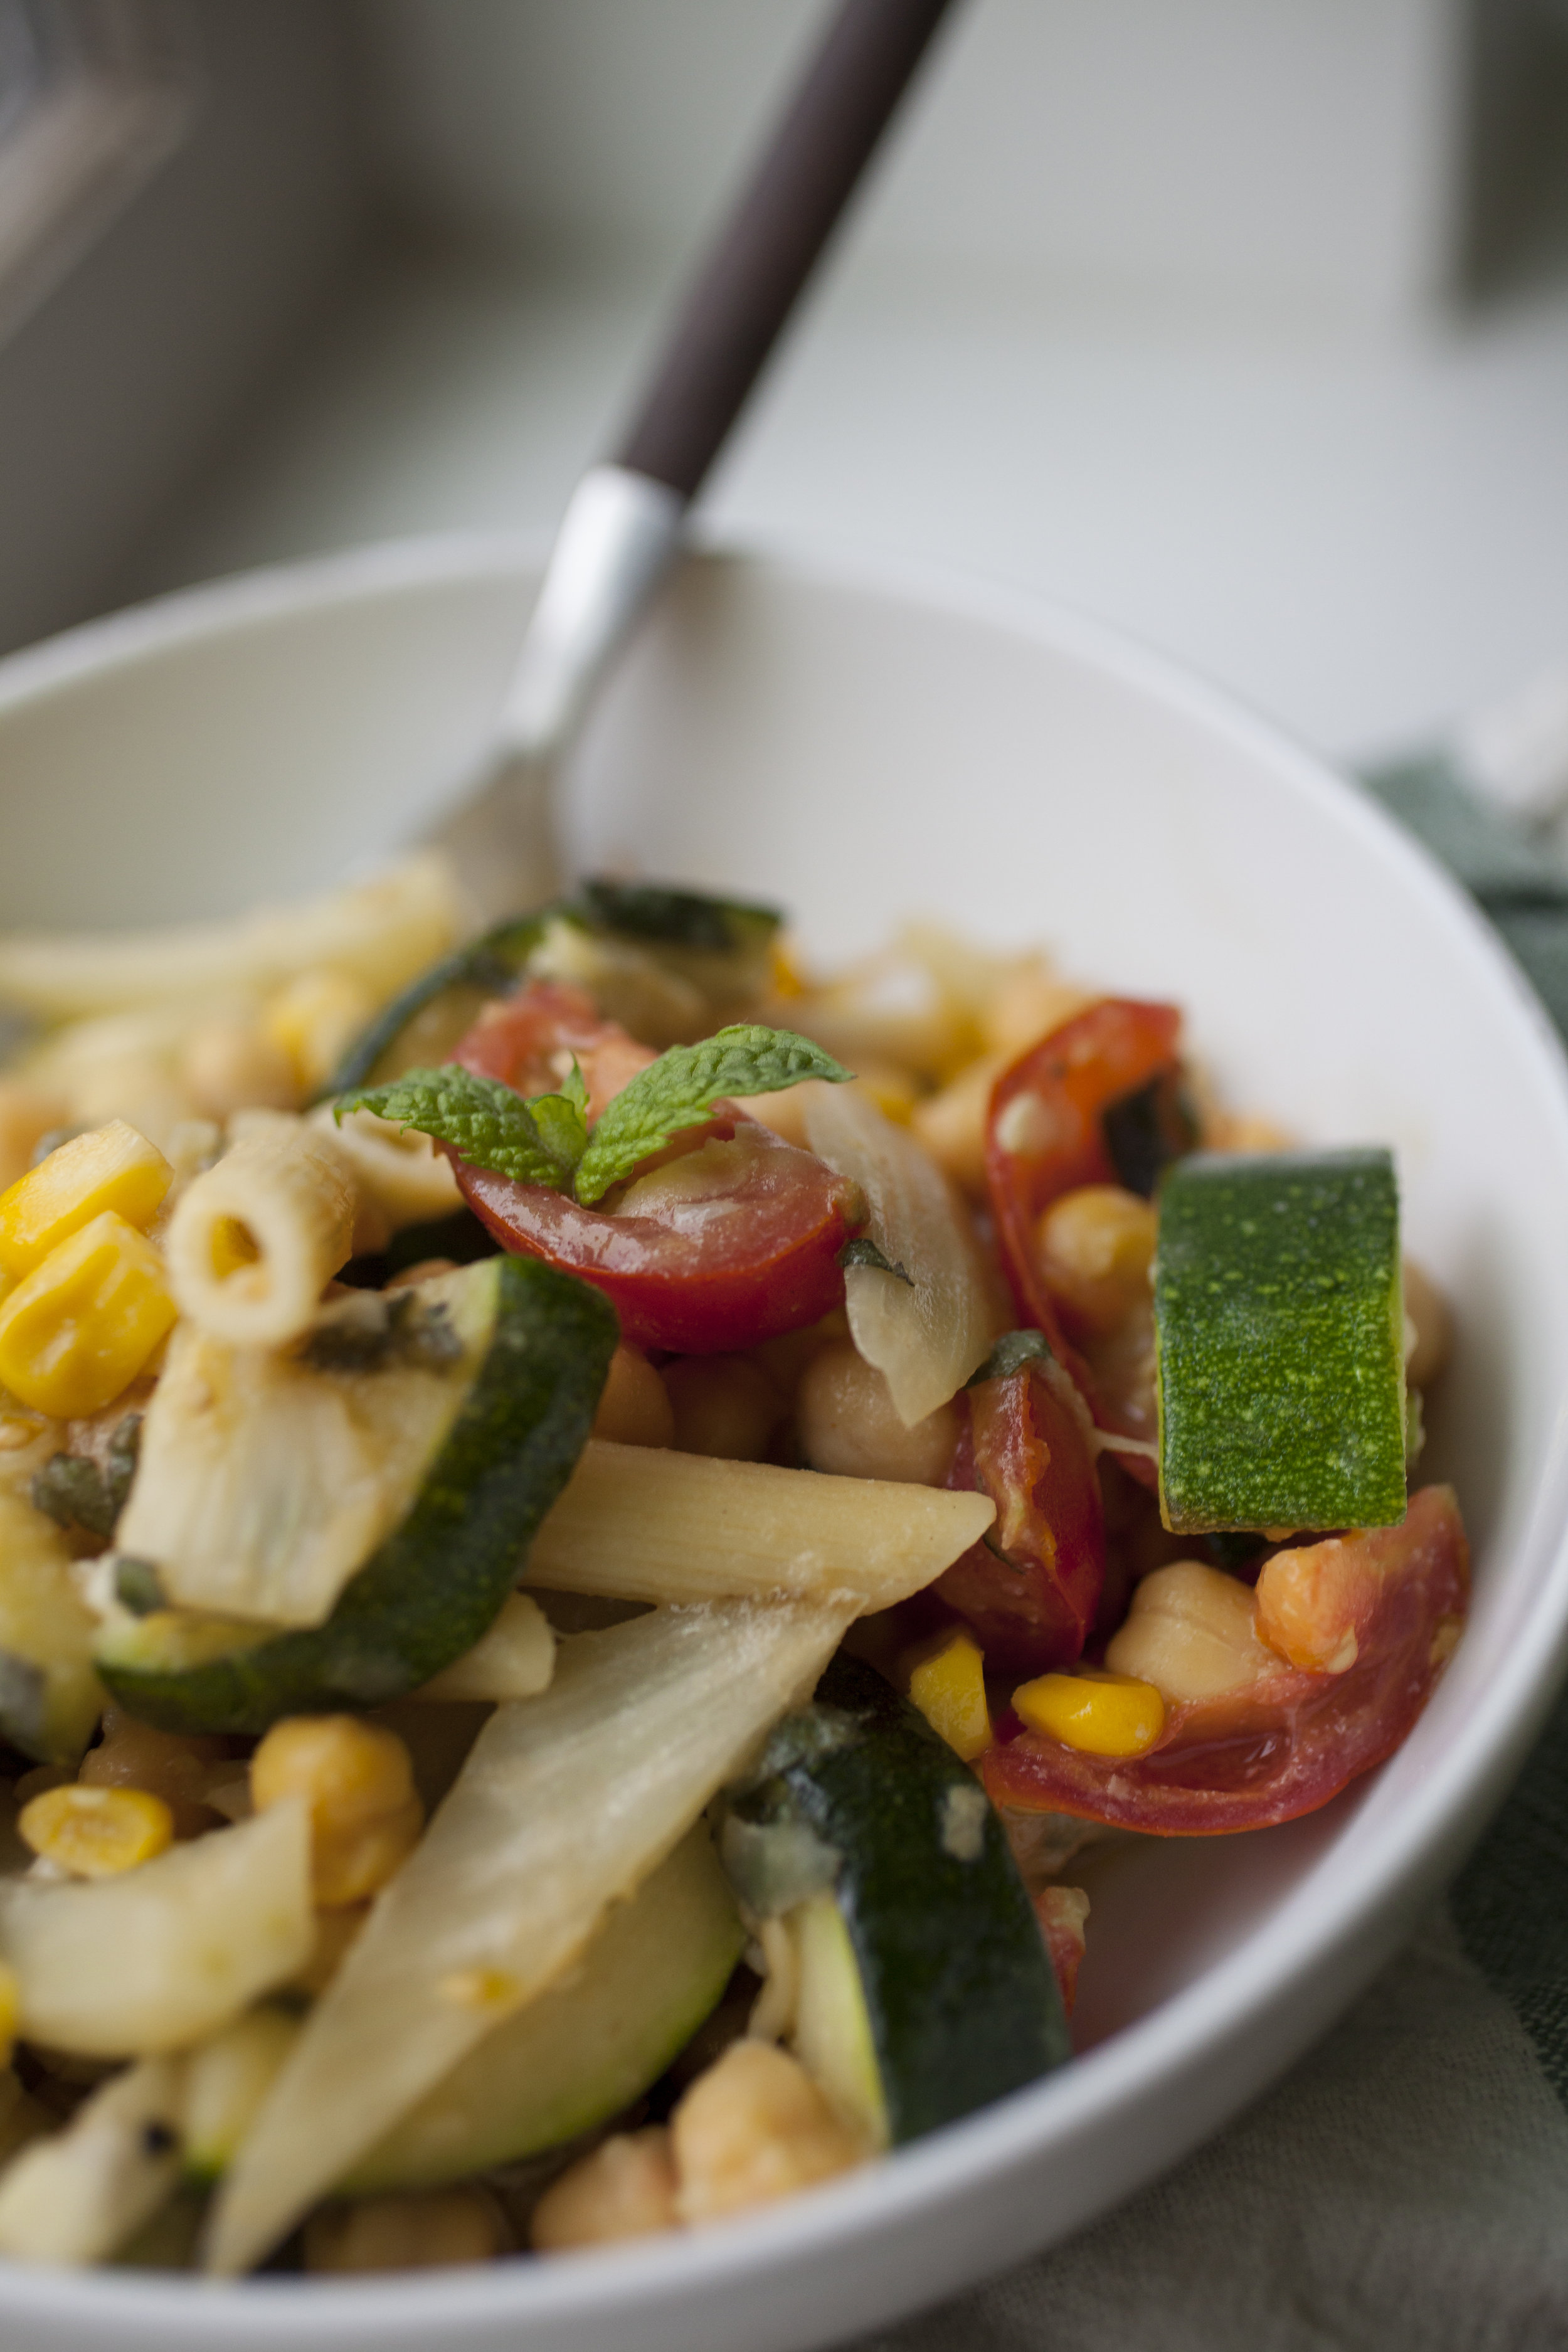 CSA Fennel, Zucchini, & Tomato Pasta - Produce On Parade - CSAs are wonderful, but if you're not exactly sure what to do with fennel, armed with an abundance of zucchini and tomatoes, they can be overwhelming. This delicious pasta dish makes use of three CSA items (we had fresh mint in ours so that makes four!) in spectacular fashion. Sweet, roasted fennel and zucchini blend with umami miso and nutritional yeast and tart cherry tomatoes for a lovely summer pasta dish.